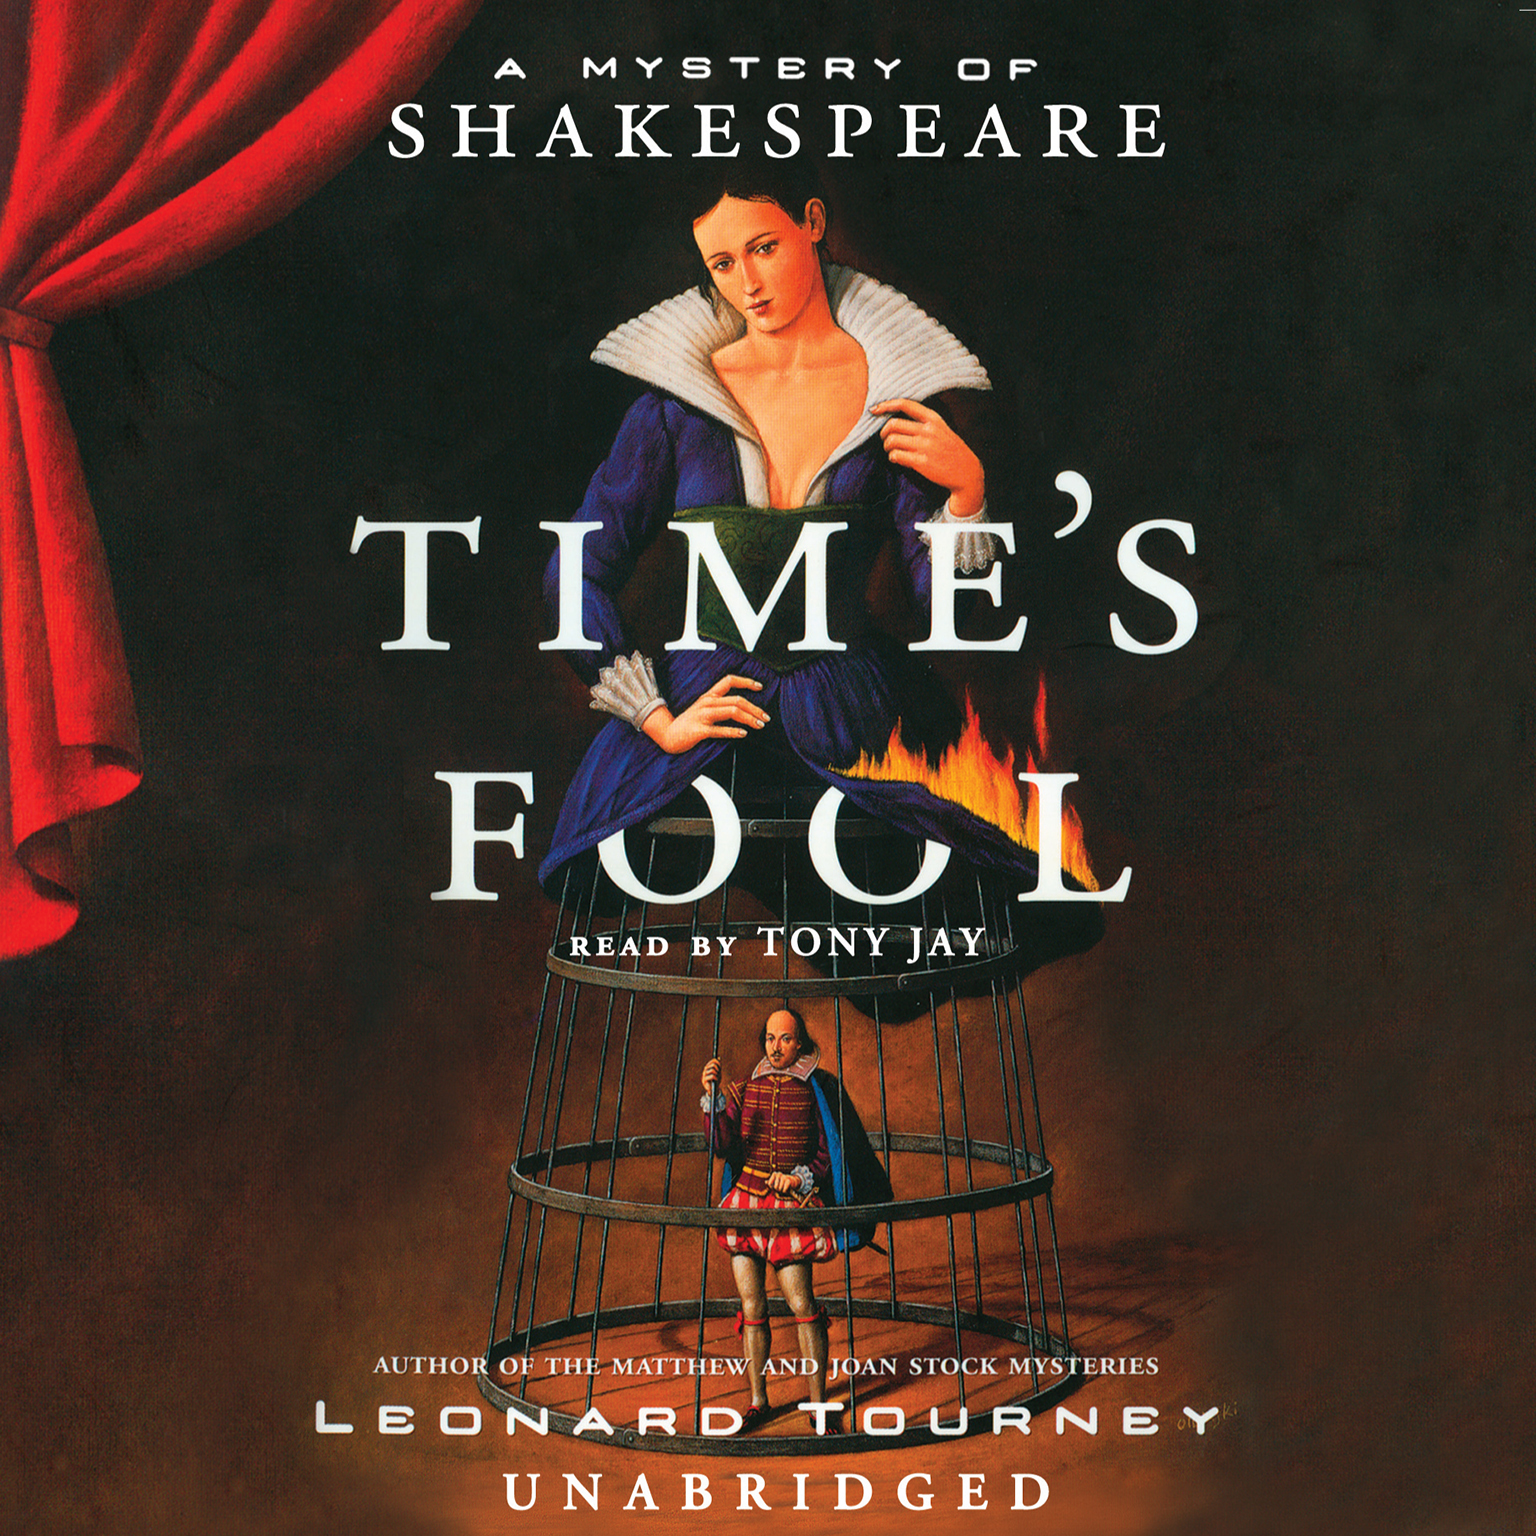 Printable Time's Fool: A Mystery of Shakespeare Audiobook Cover Art